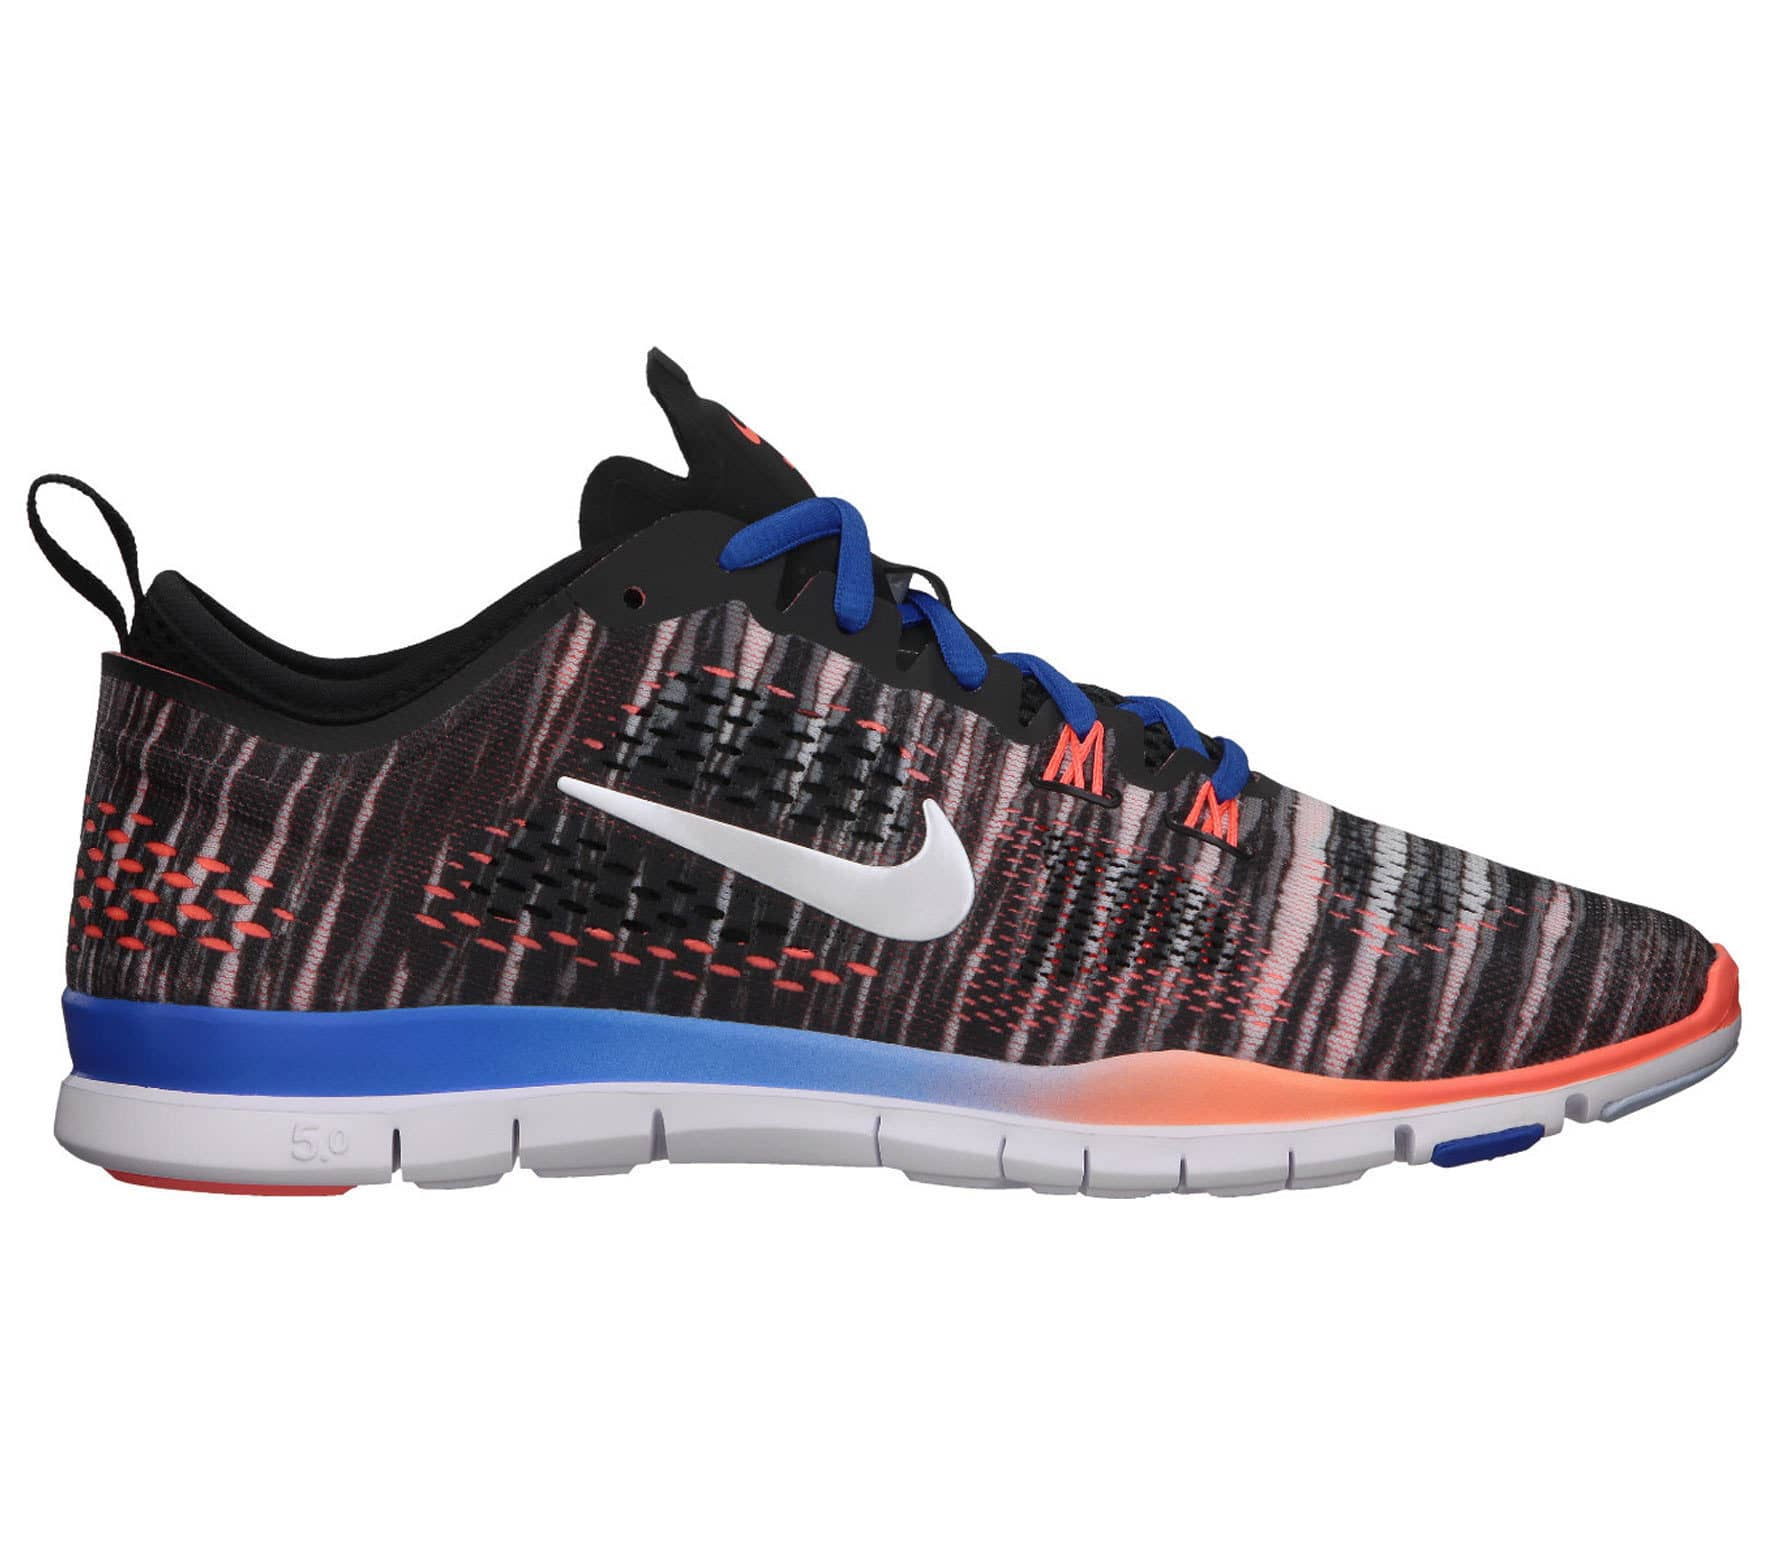 official photos 4a40e 412af Nike - Free 5.0 Trainer Fit 4 PRT women's training shoes (black/white)